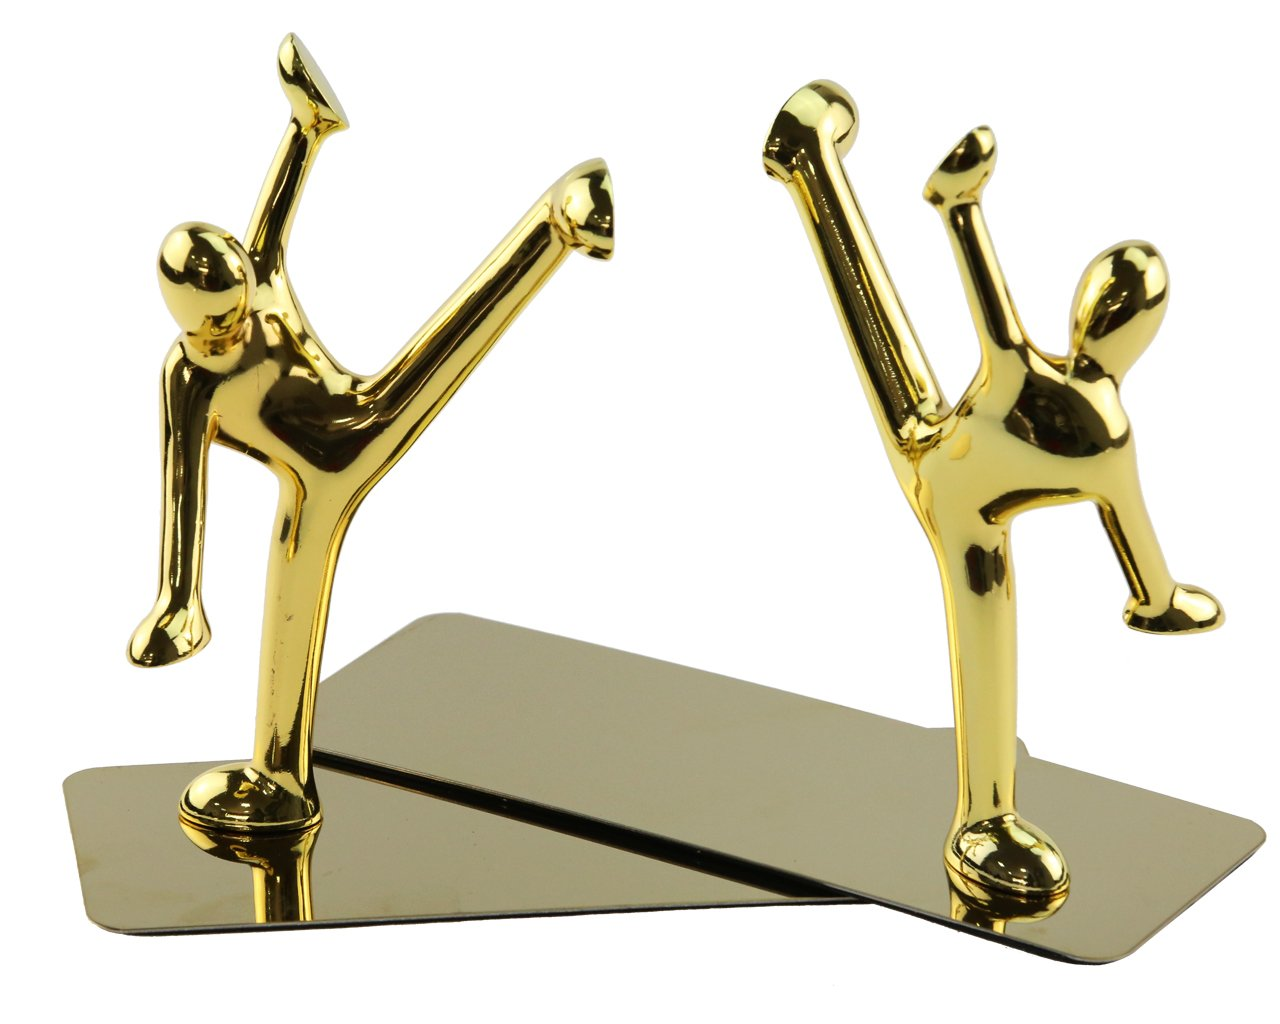 Creative Gold Stainless Steel Kung Fu Man kick Legs Book Organizer Metal Bookends Book Ends for Desk Office Home Decoration Gift by Apol